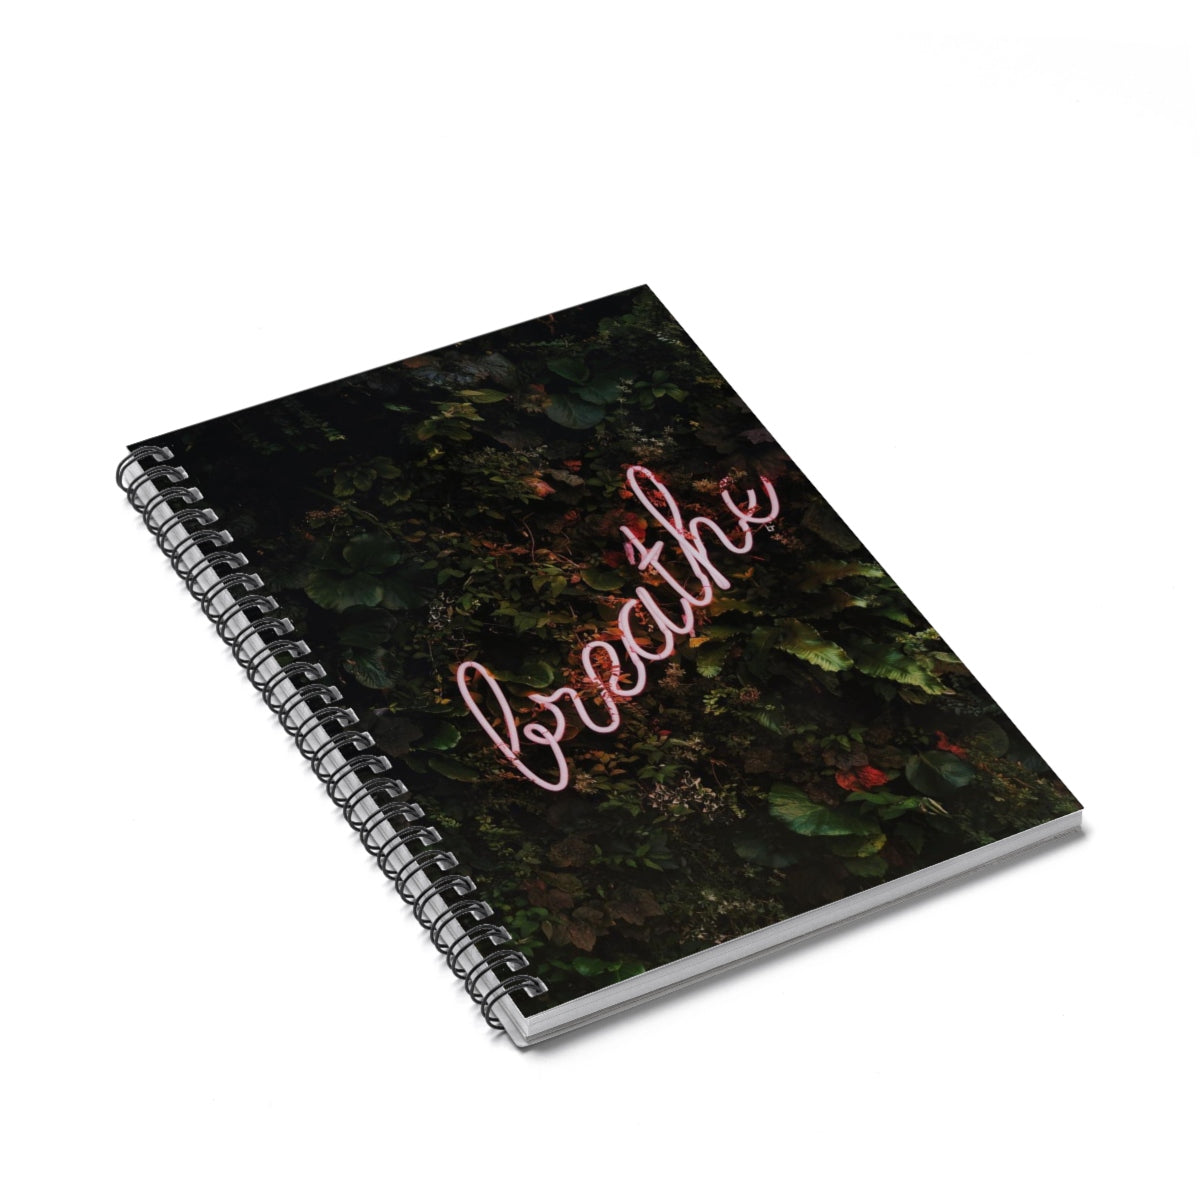 Breathe! Spiral Notebook - Ruled Line